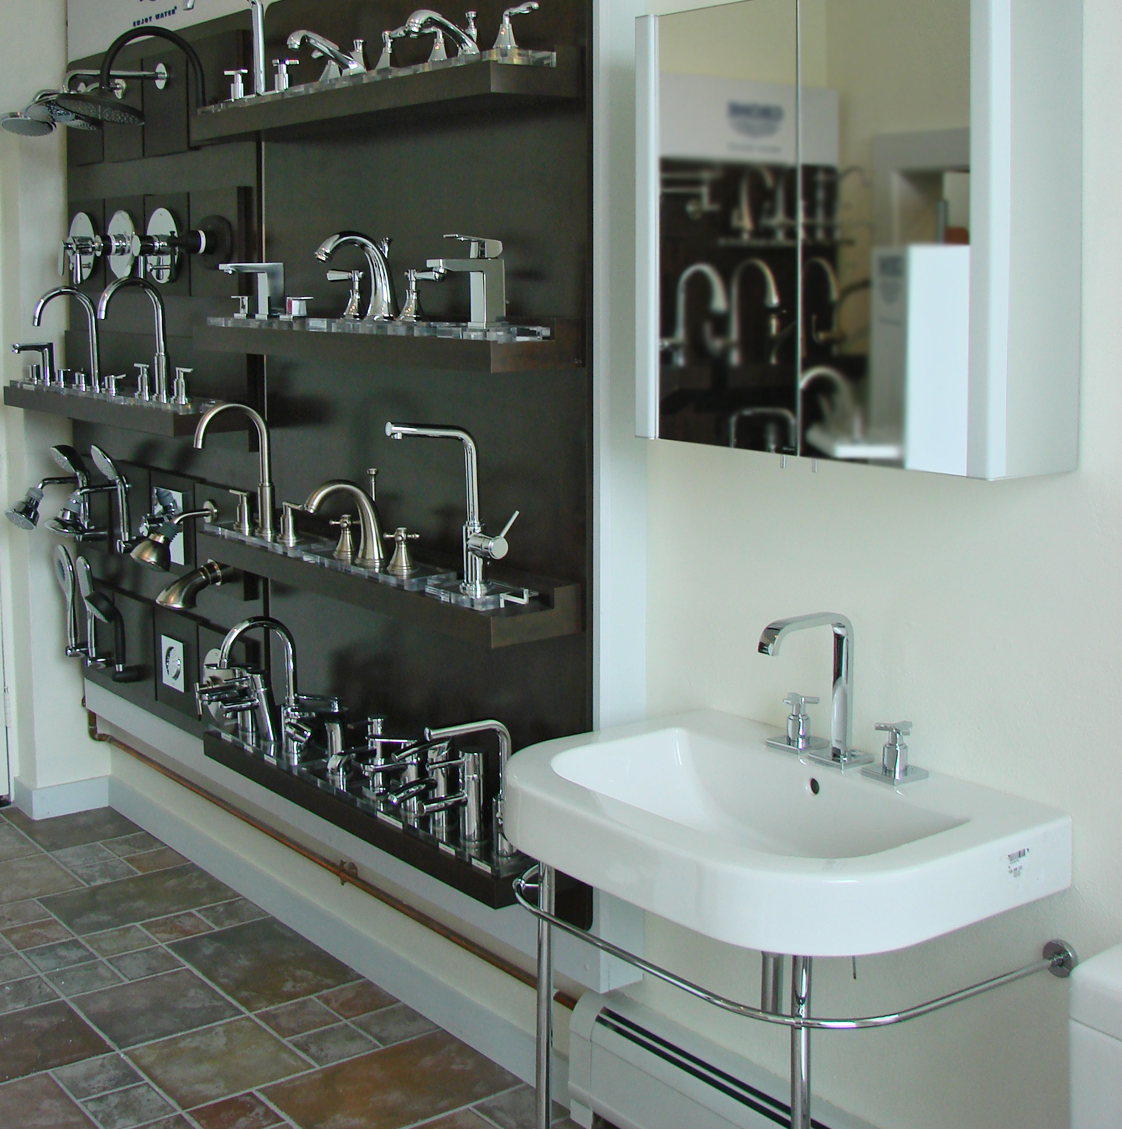 KOHLER Bathroom & Kitchen Products at Bath Expressions ... - photo#47